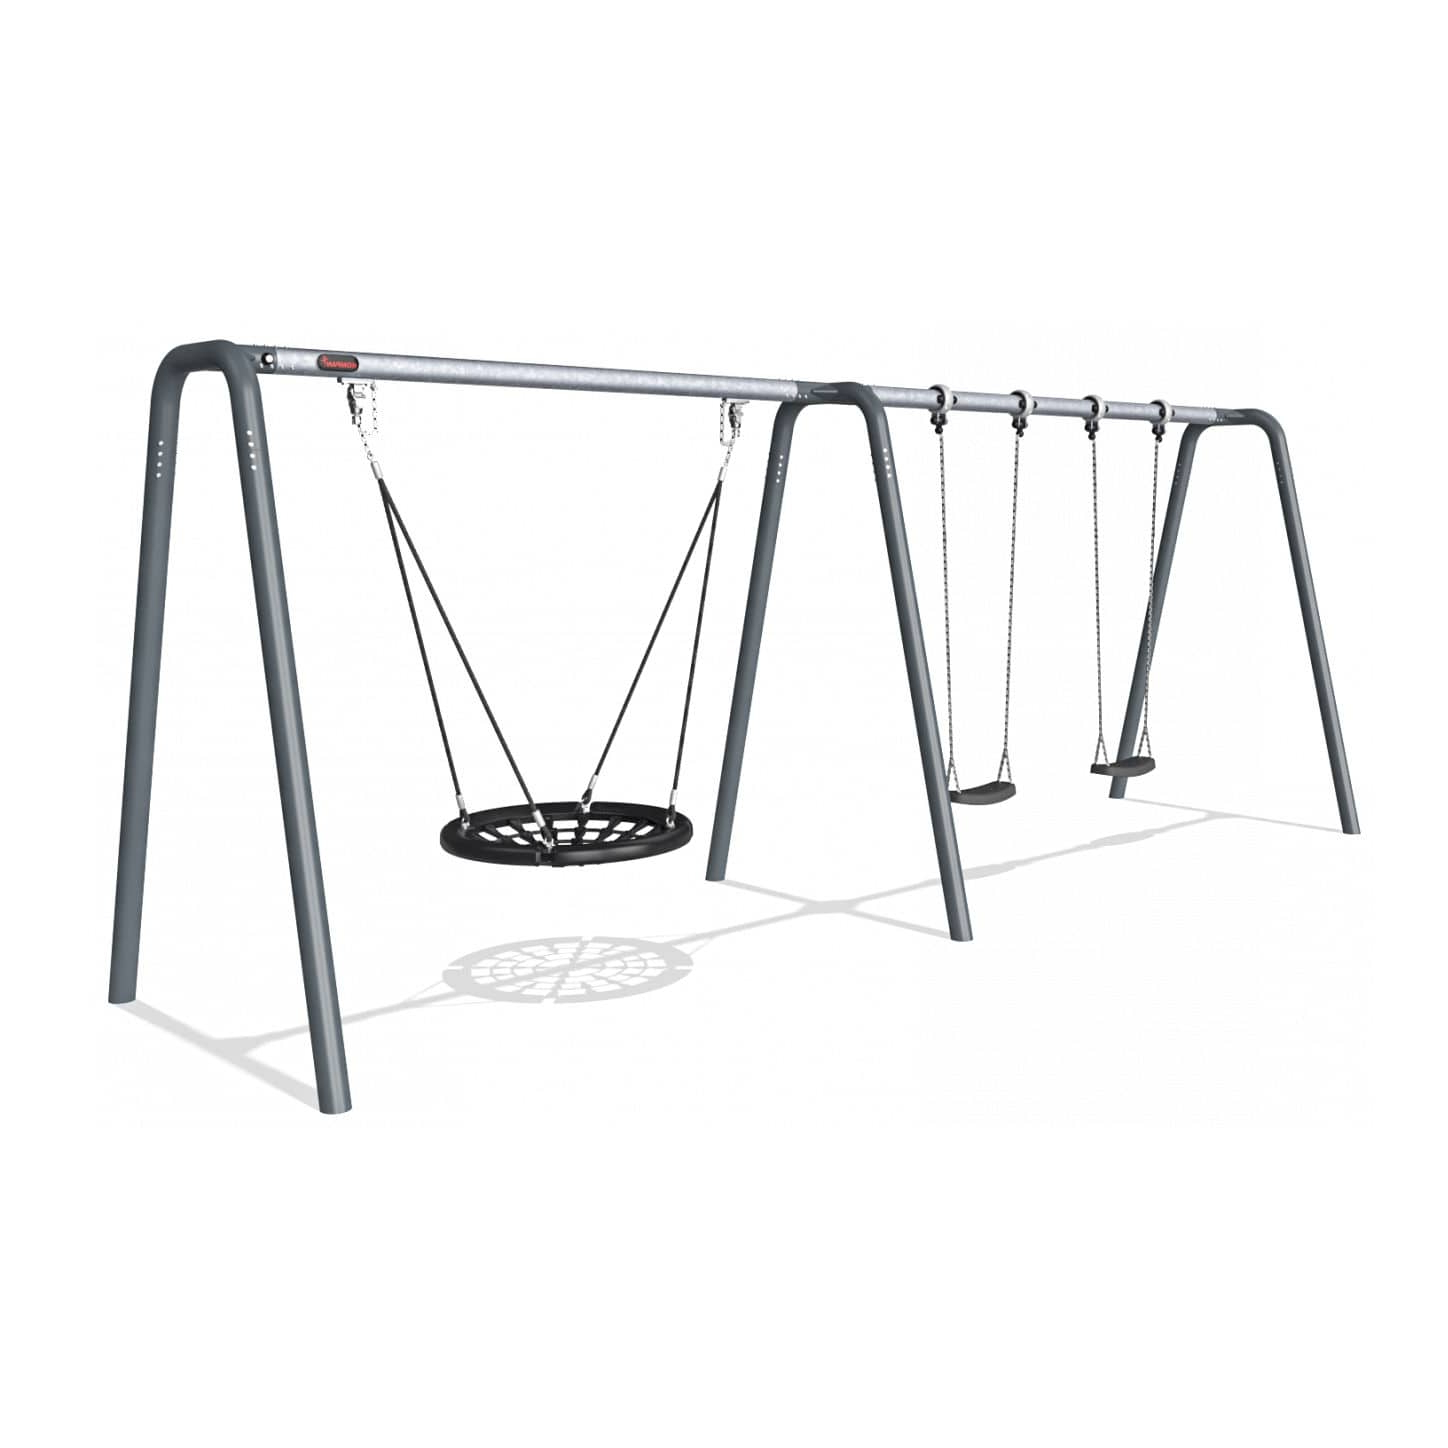 Most Popular Galvanized Steel Swing / Playground / Multi Person Pertaining To 2 Person Black Steel Outdoor Swings (View 16 of 25)